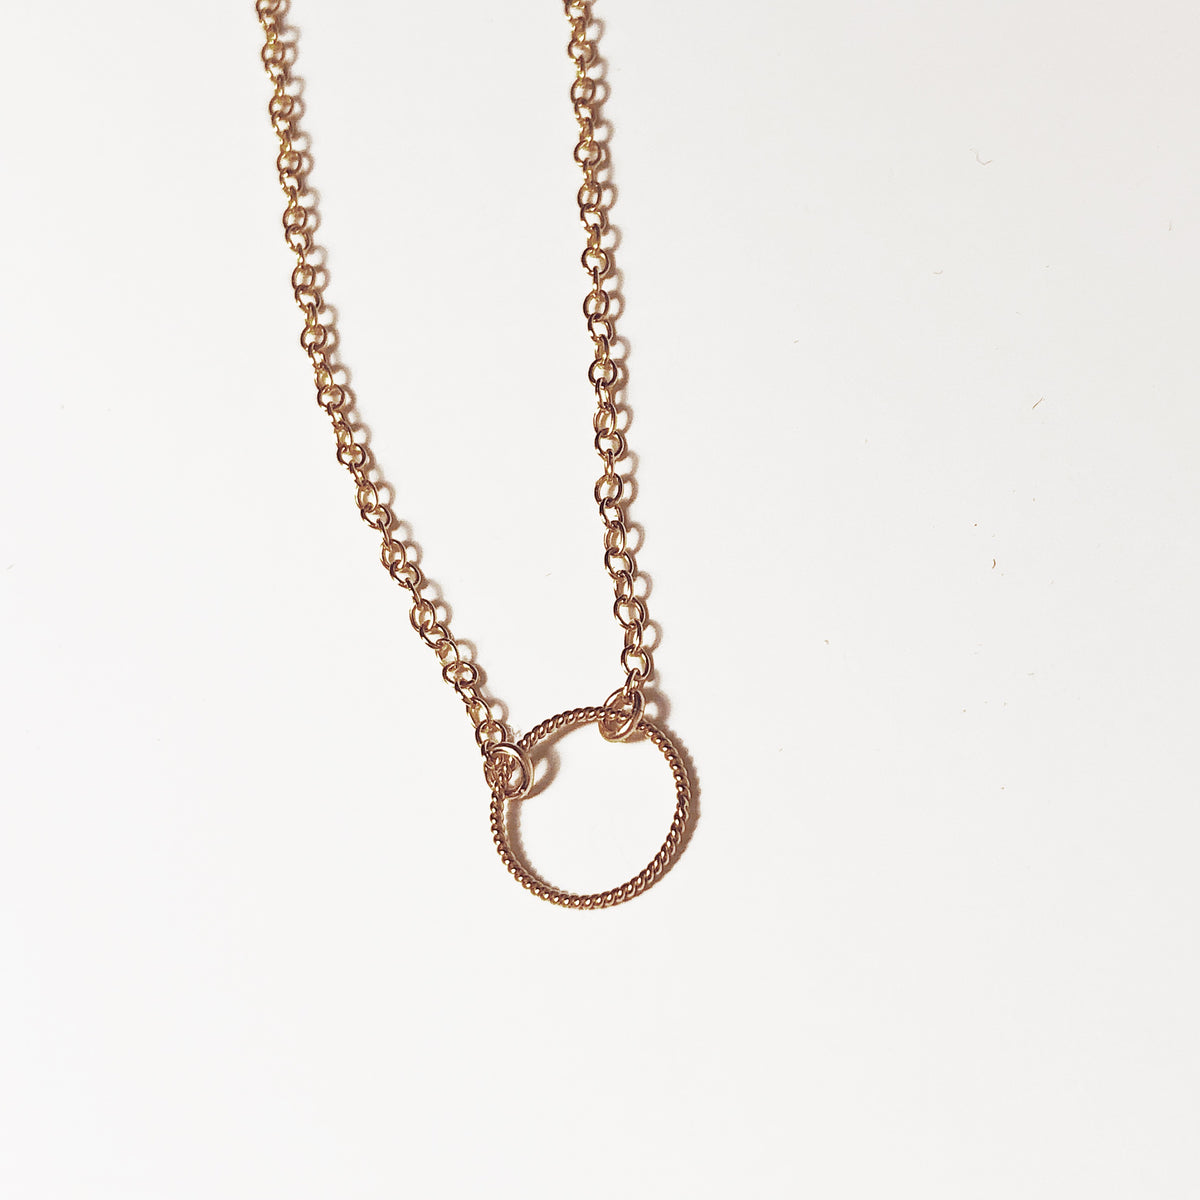 Circle Rope Karma Necklace (7035954119)